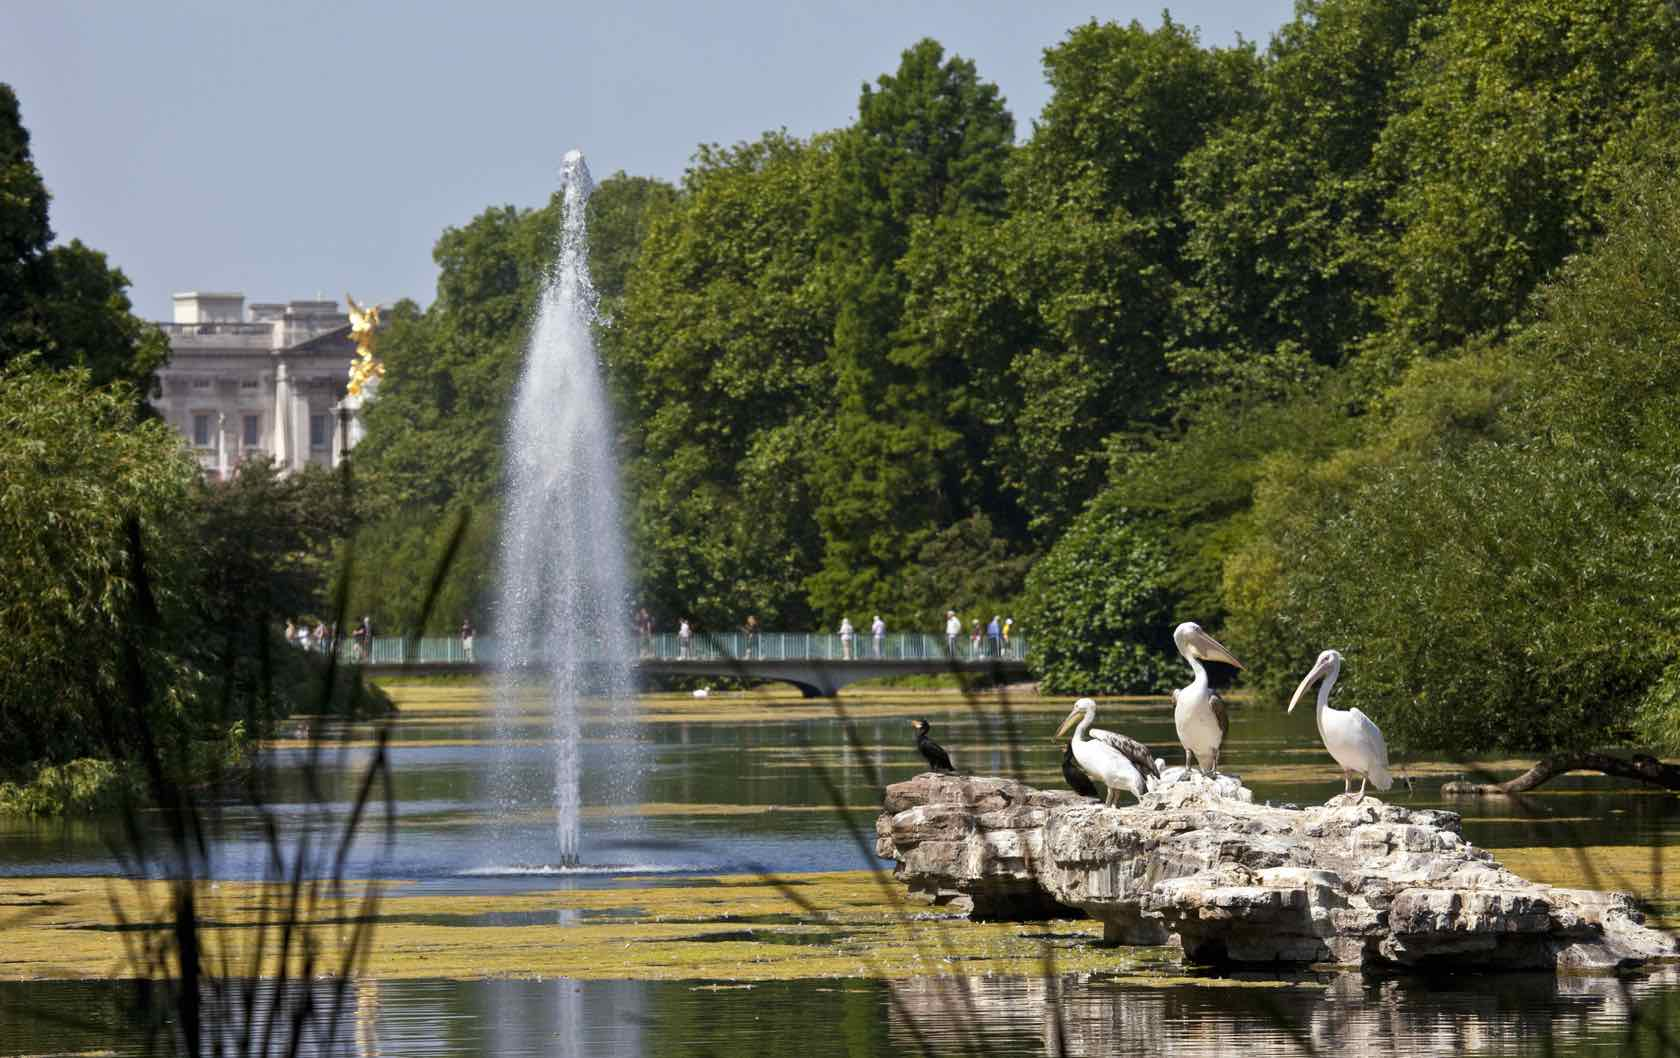 Wild London: Where To Find Wildlife In London